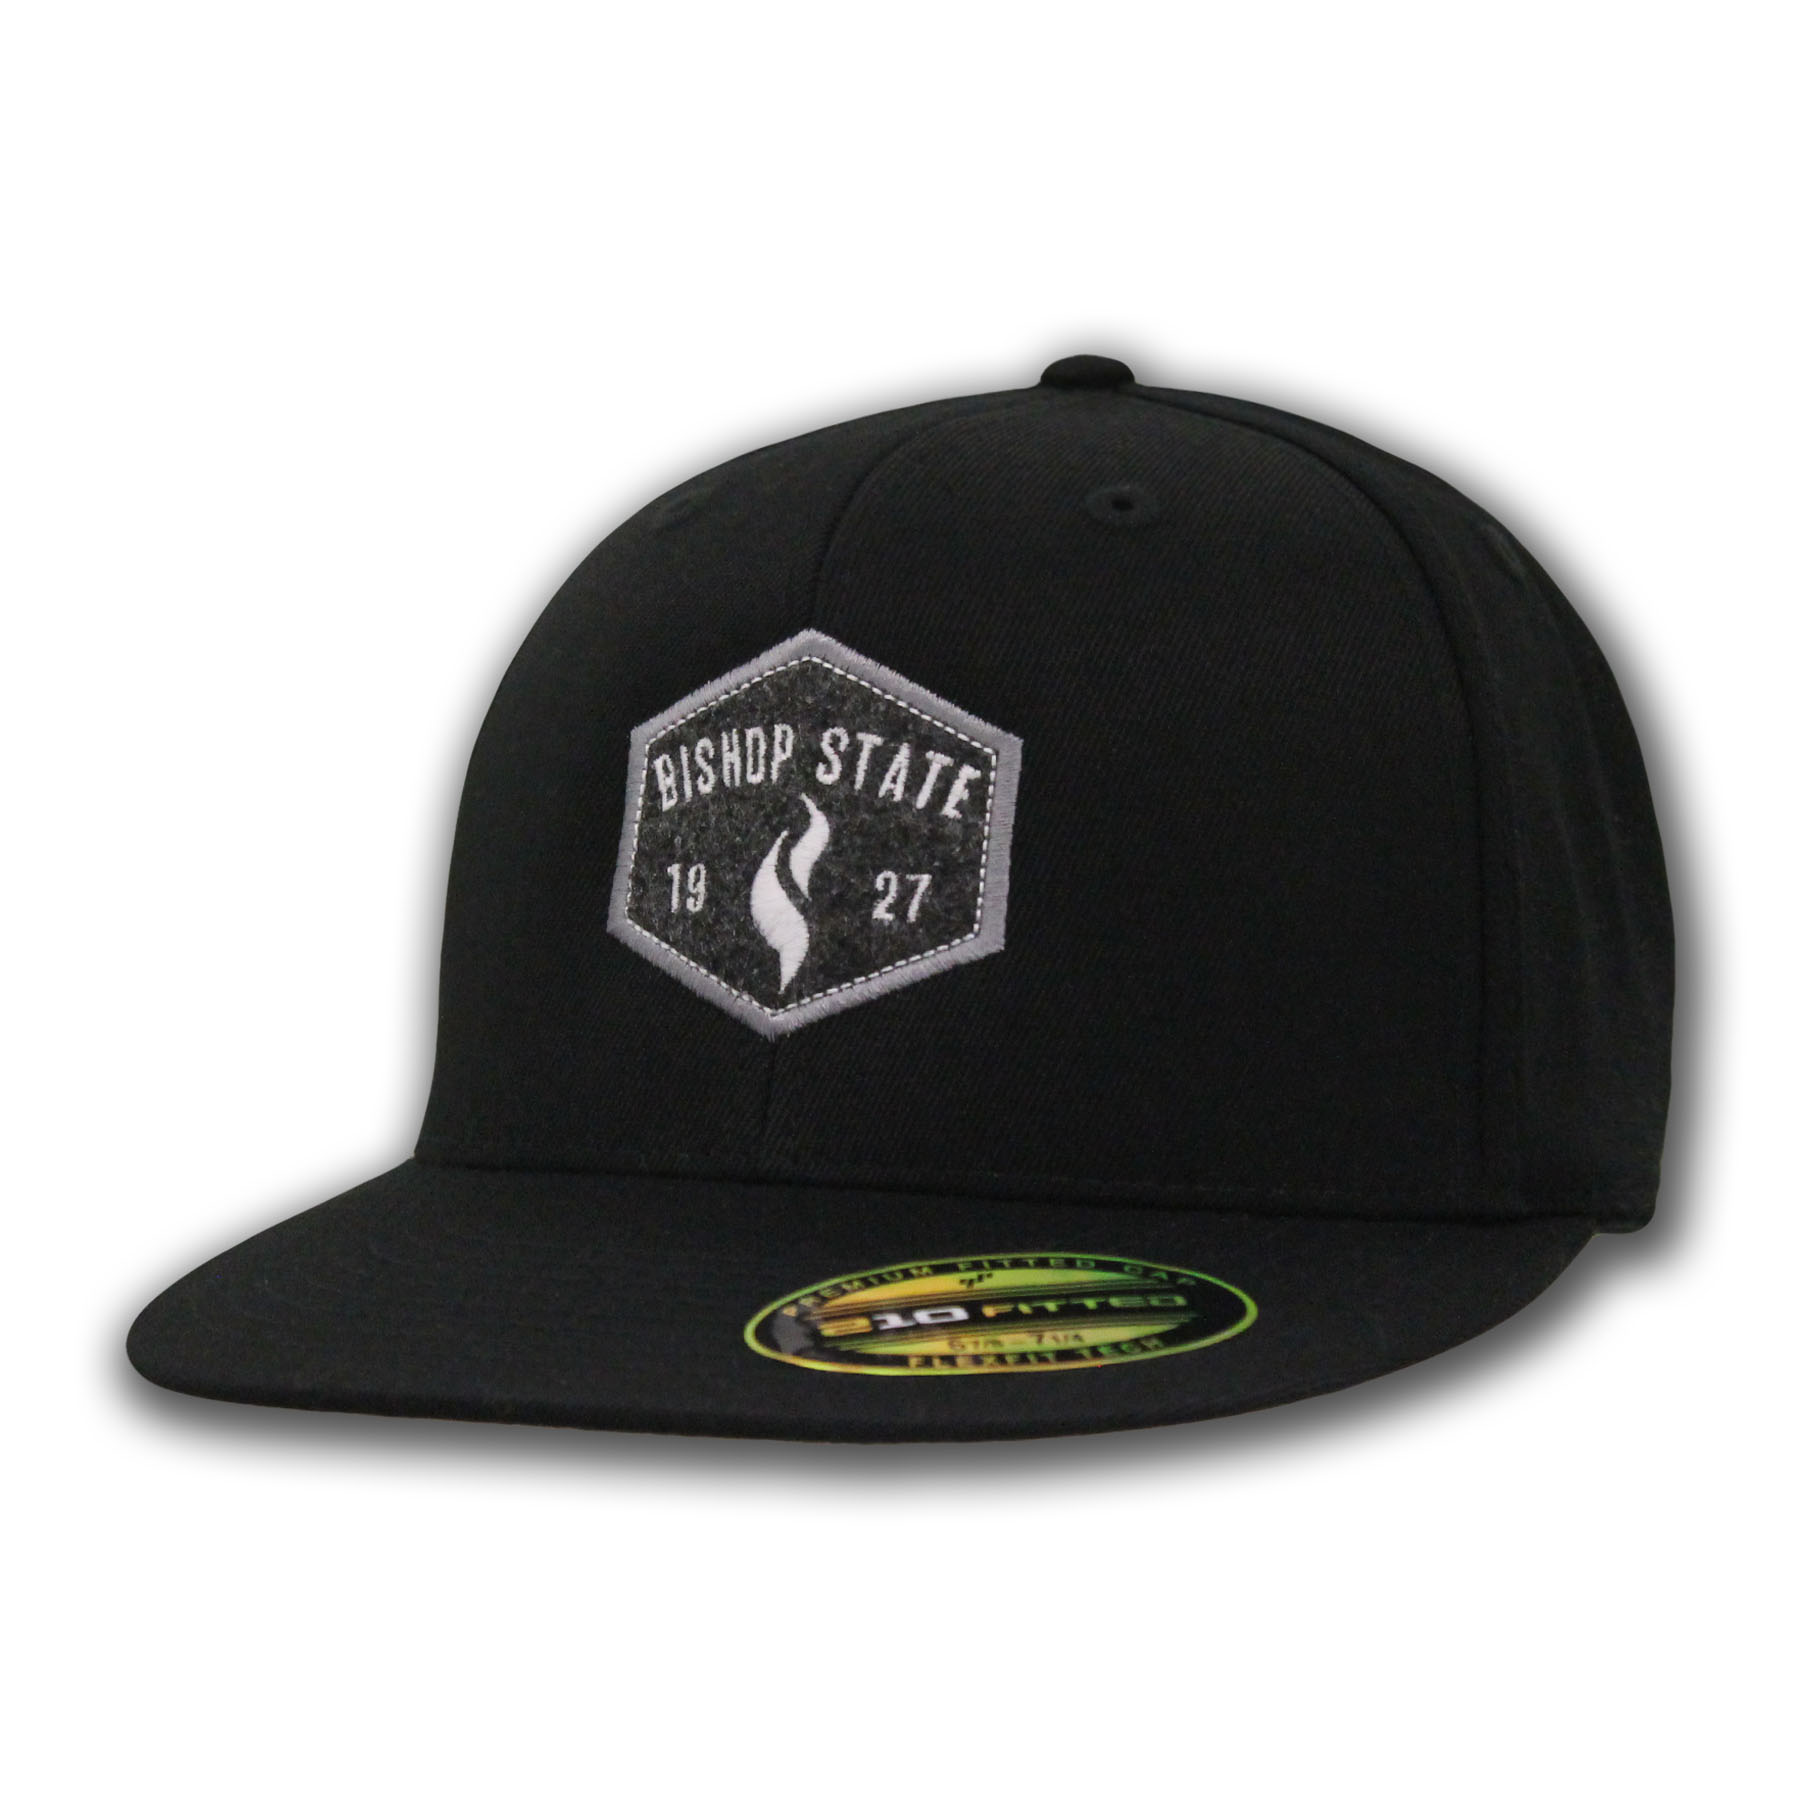 Bishop State Flat Bib Cap